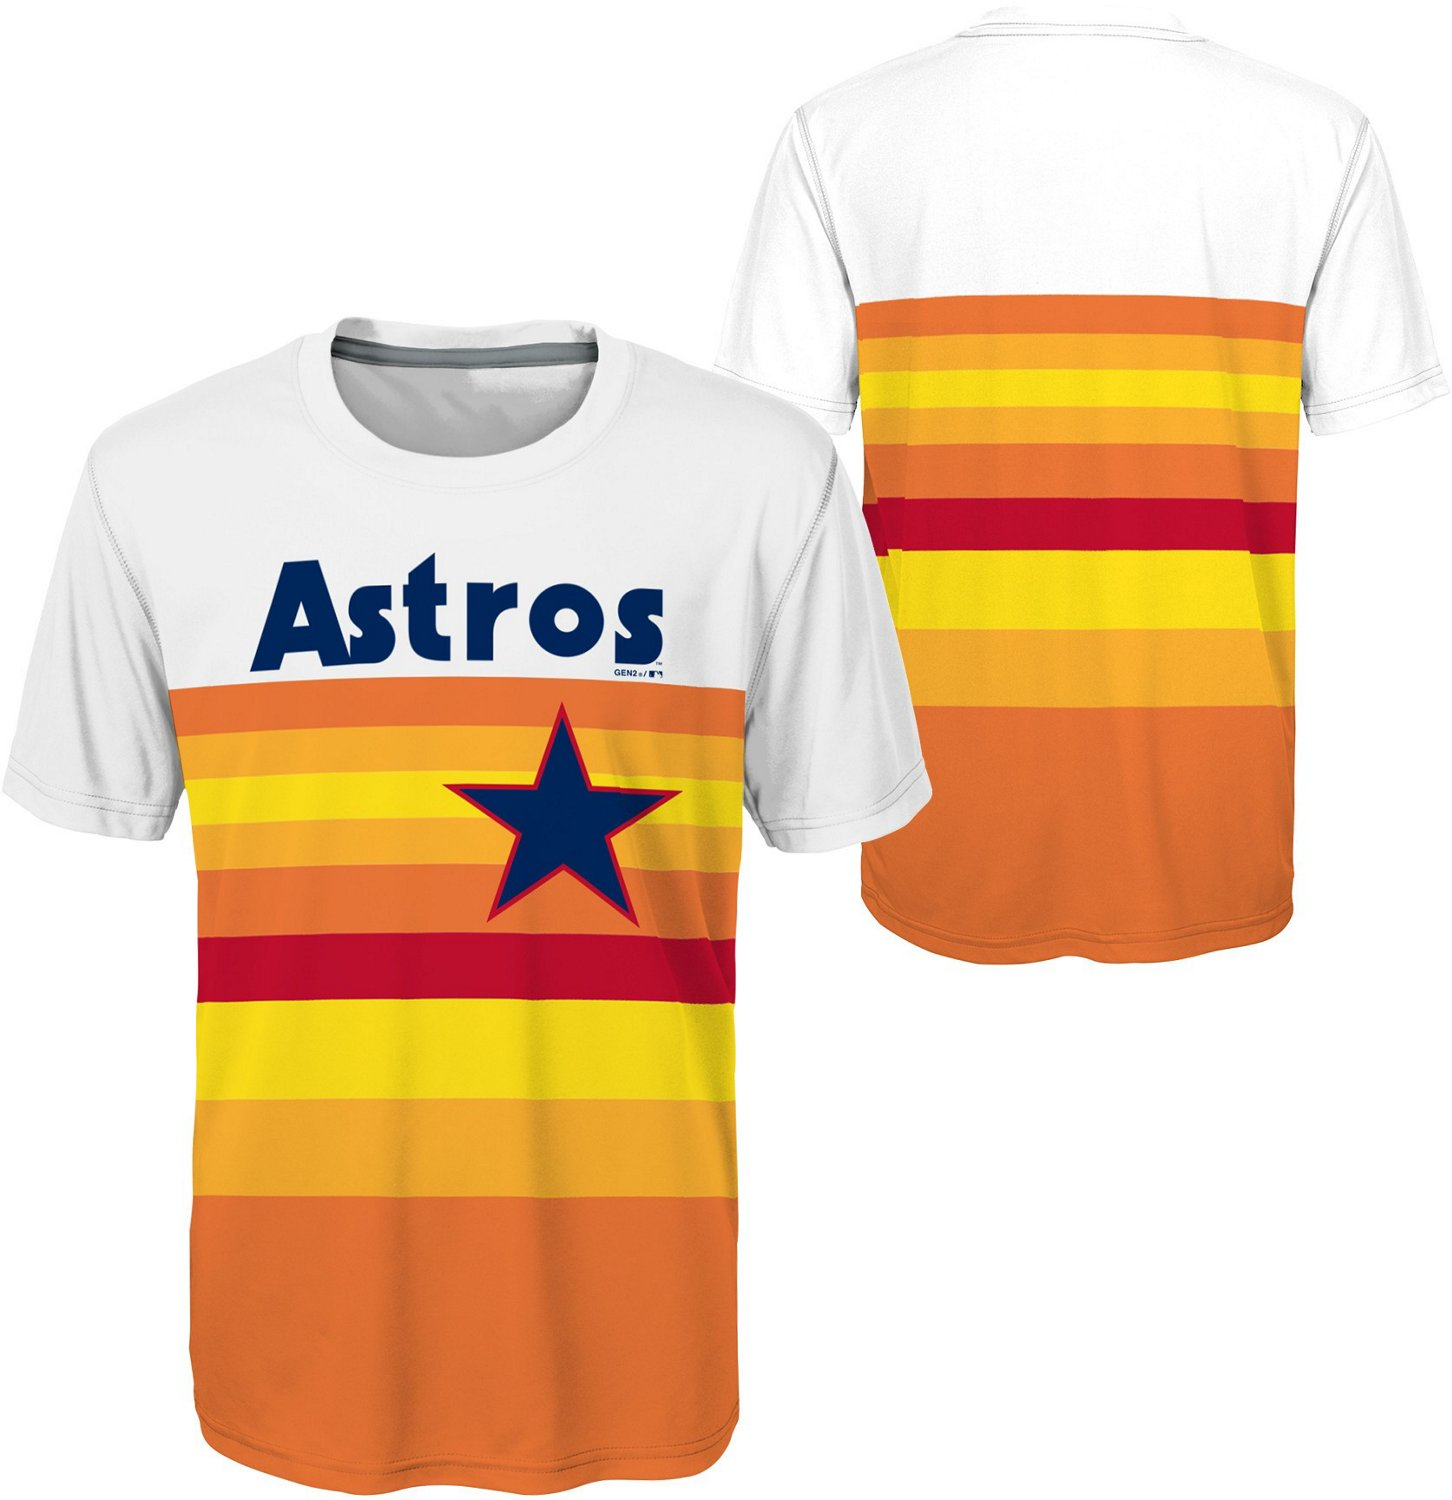 new product e3b3f 06cf7 Majestic Boys' Houston Astros Cooperstown Sublimated Jersey T-shirt